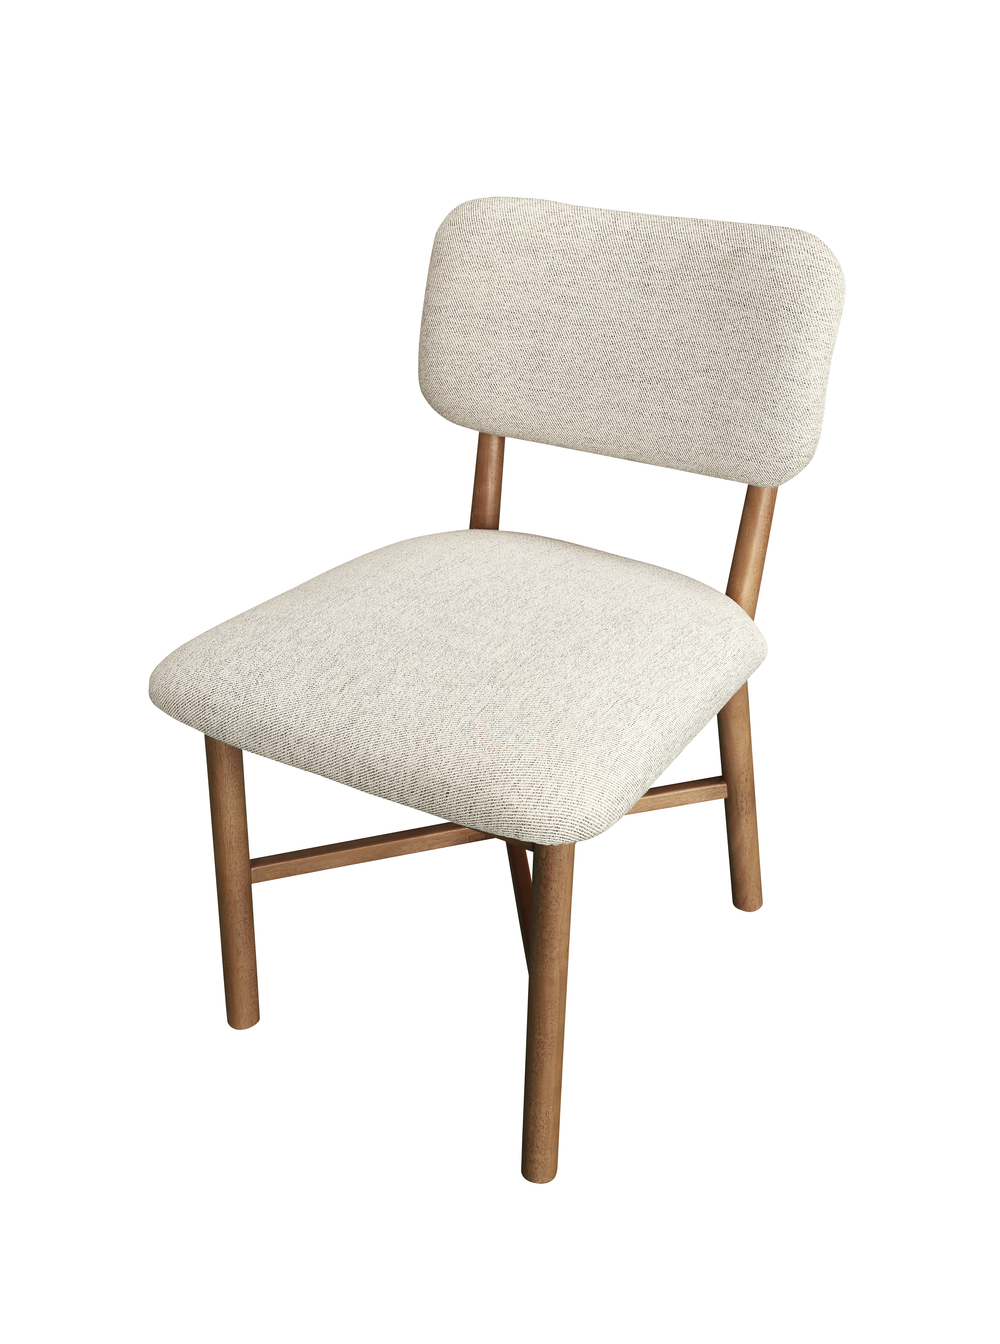 A.R.T. Furniture - Bryde Side Chair